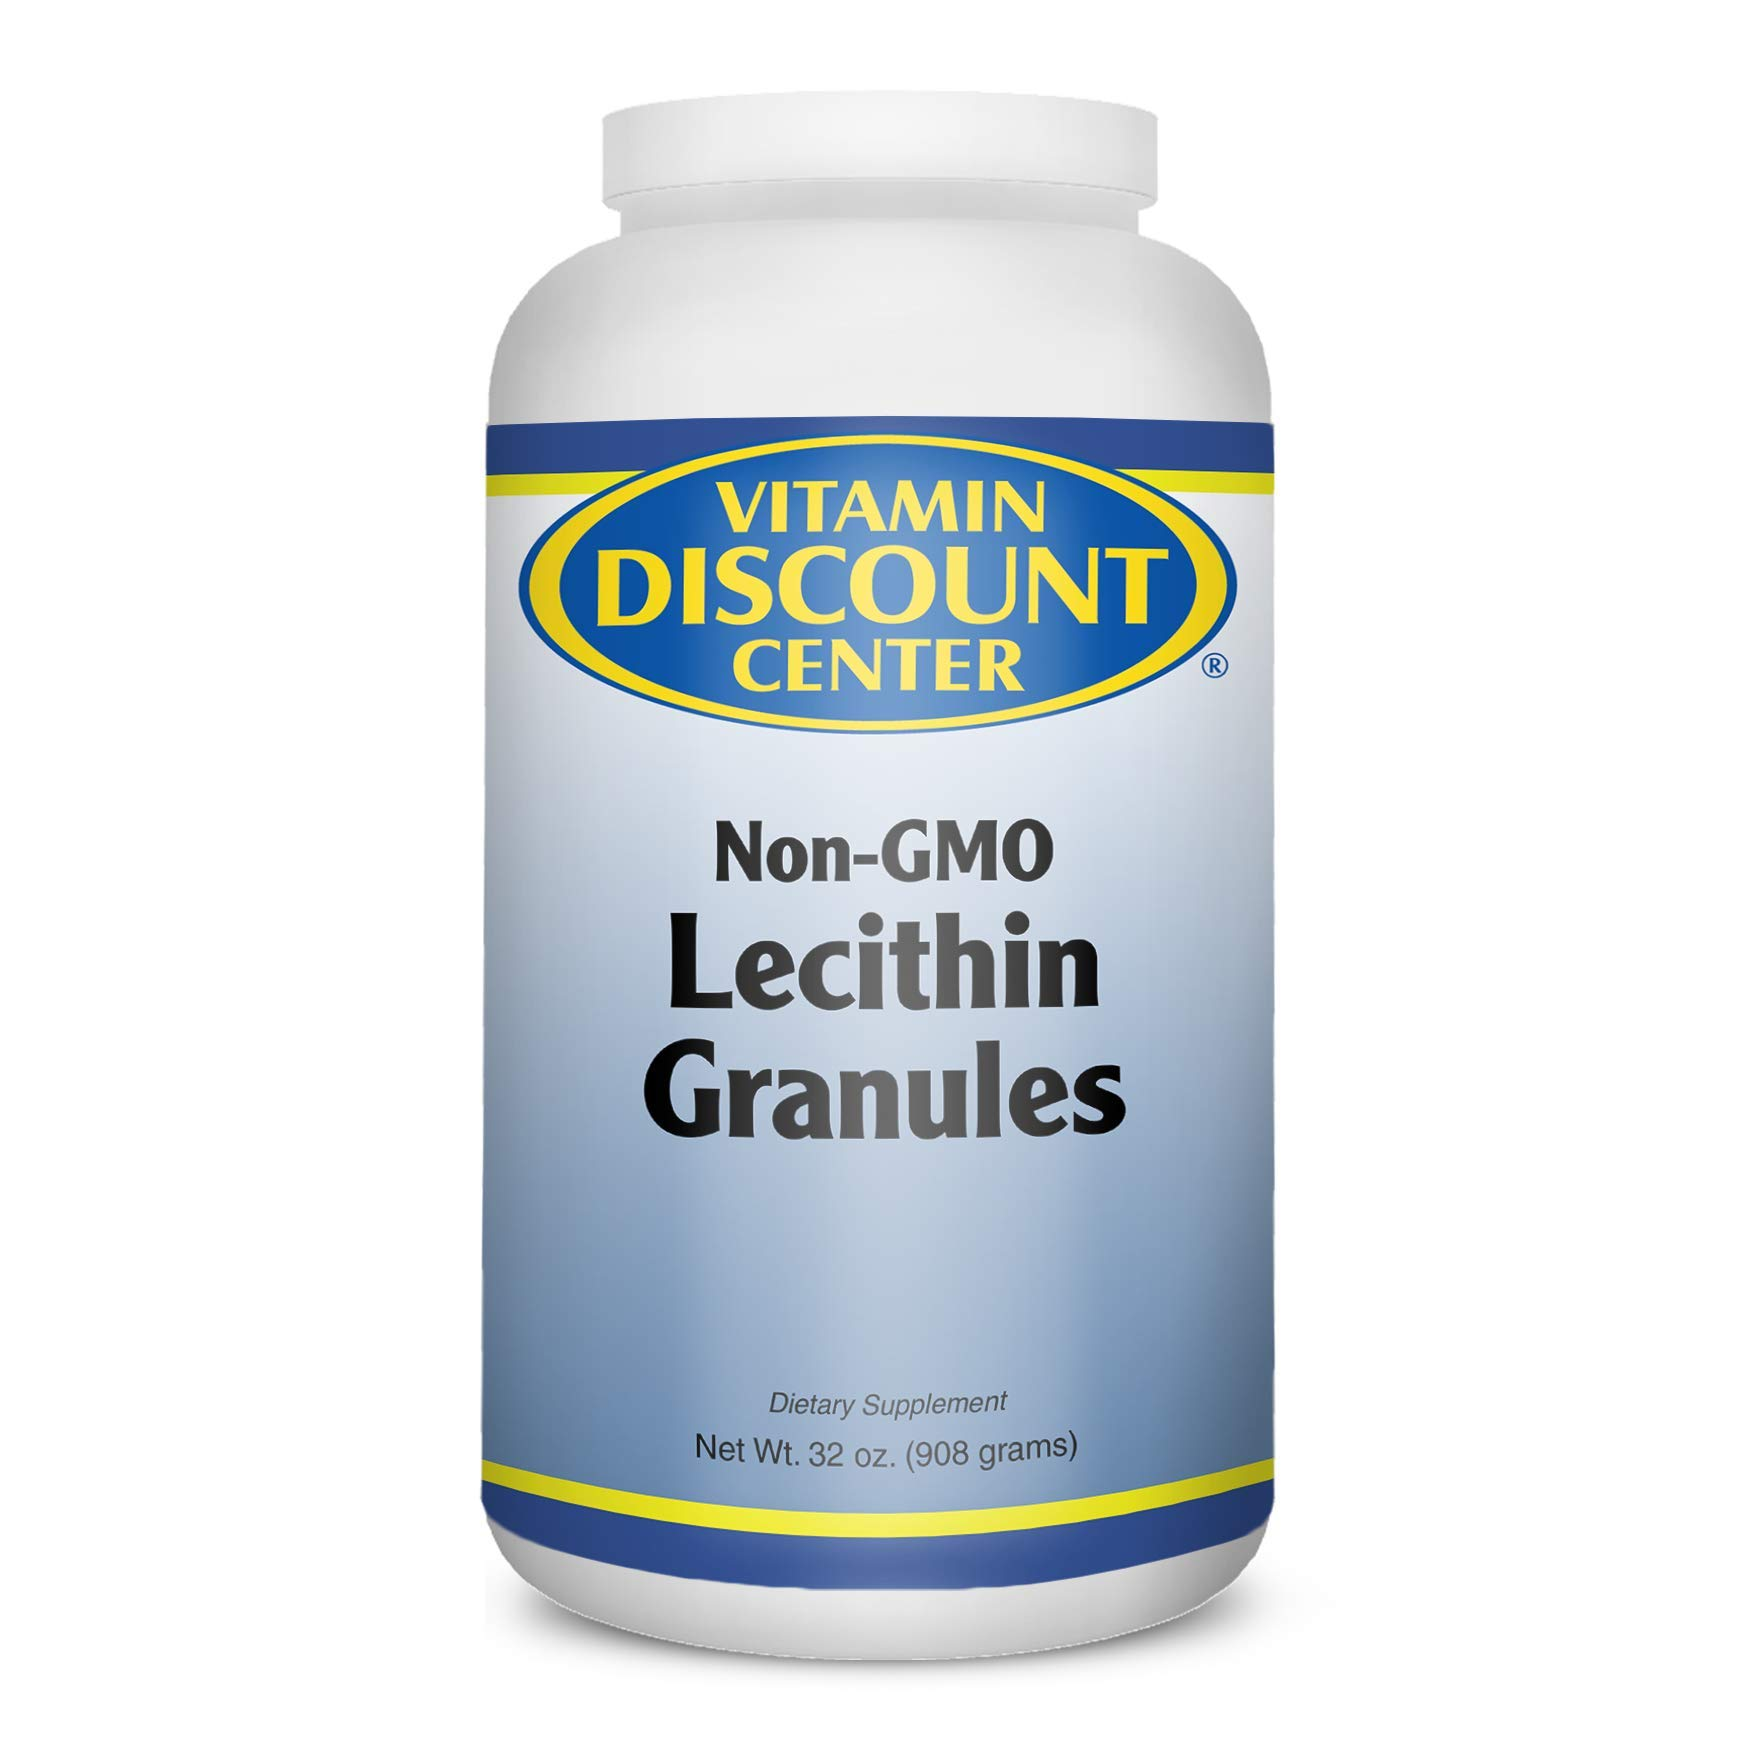 Vitamin Discount Center Lecithin Granules, Non-GMO, 32 oz